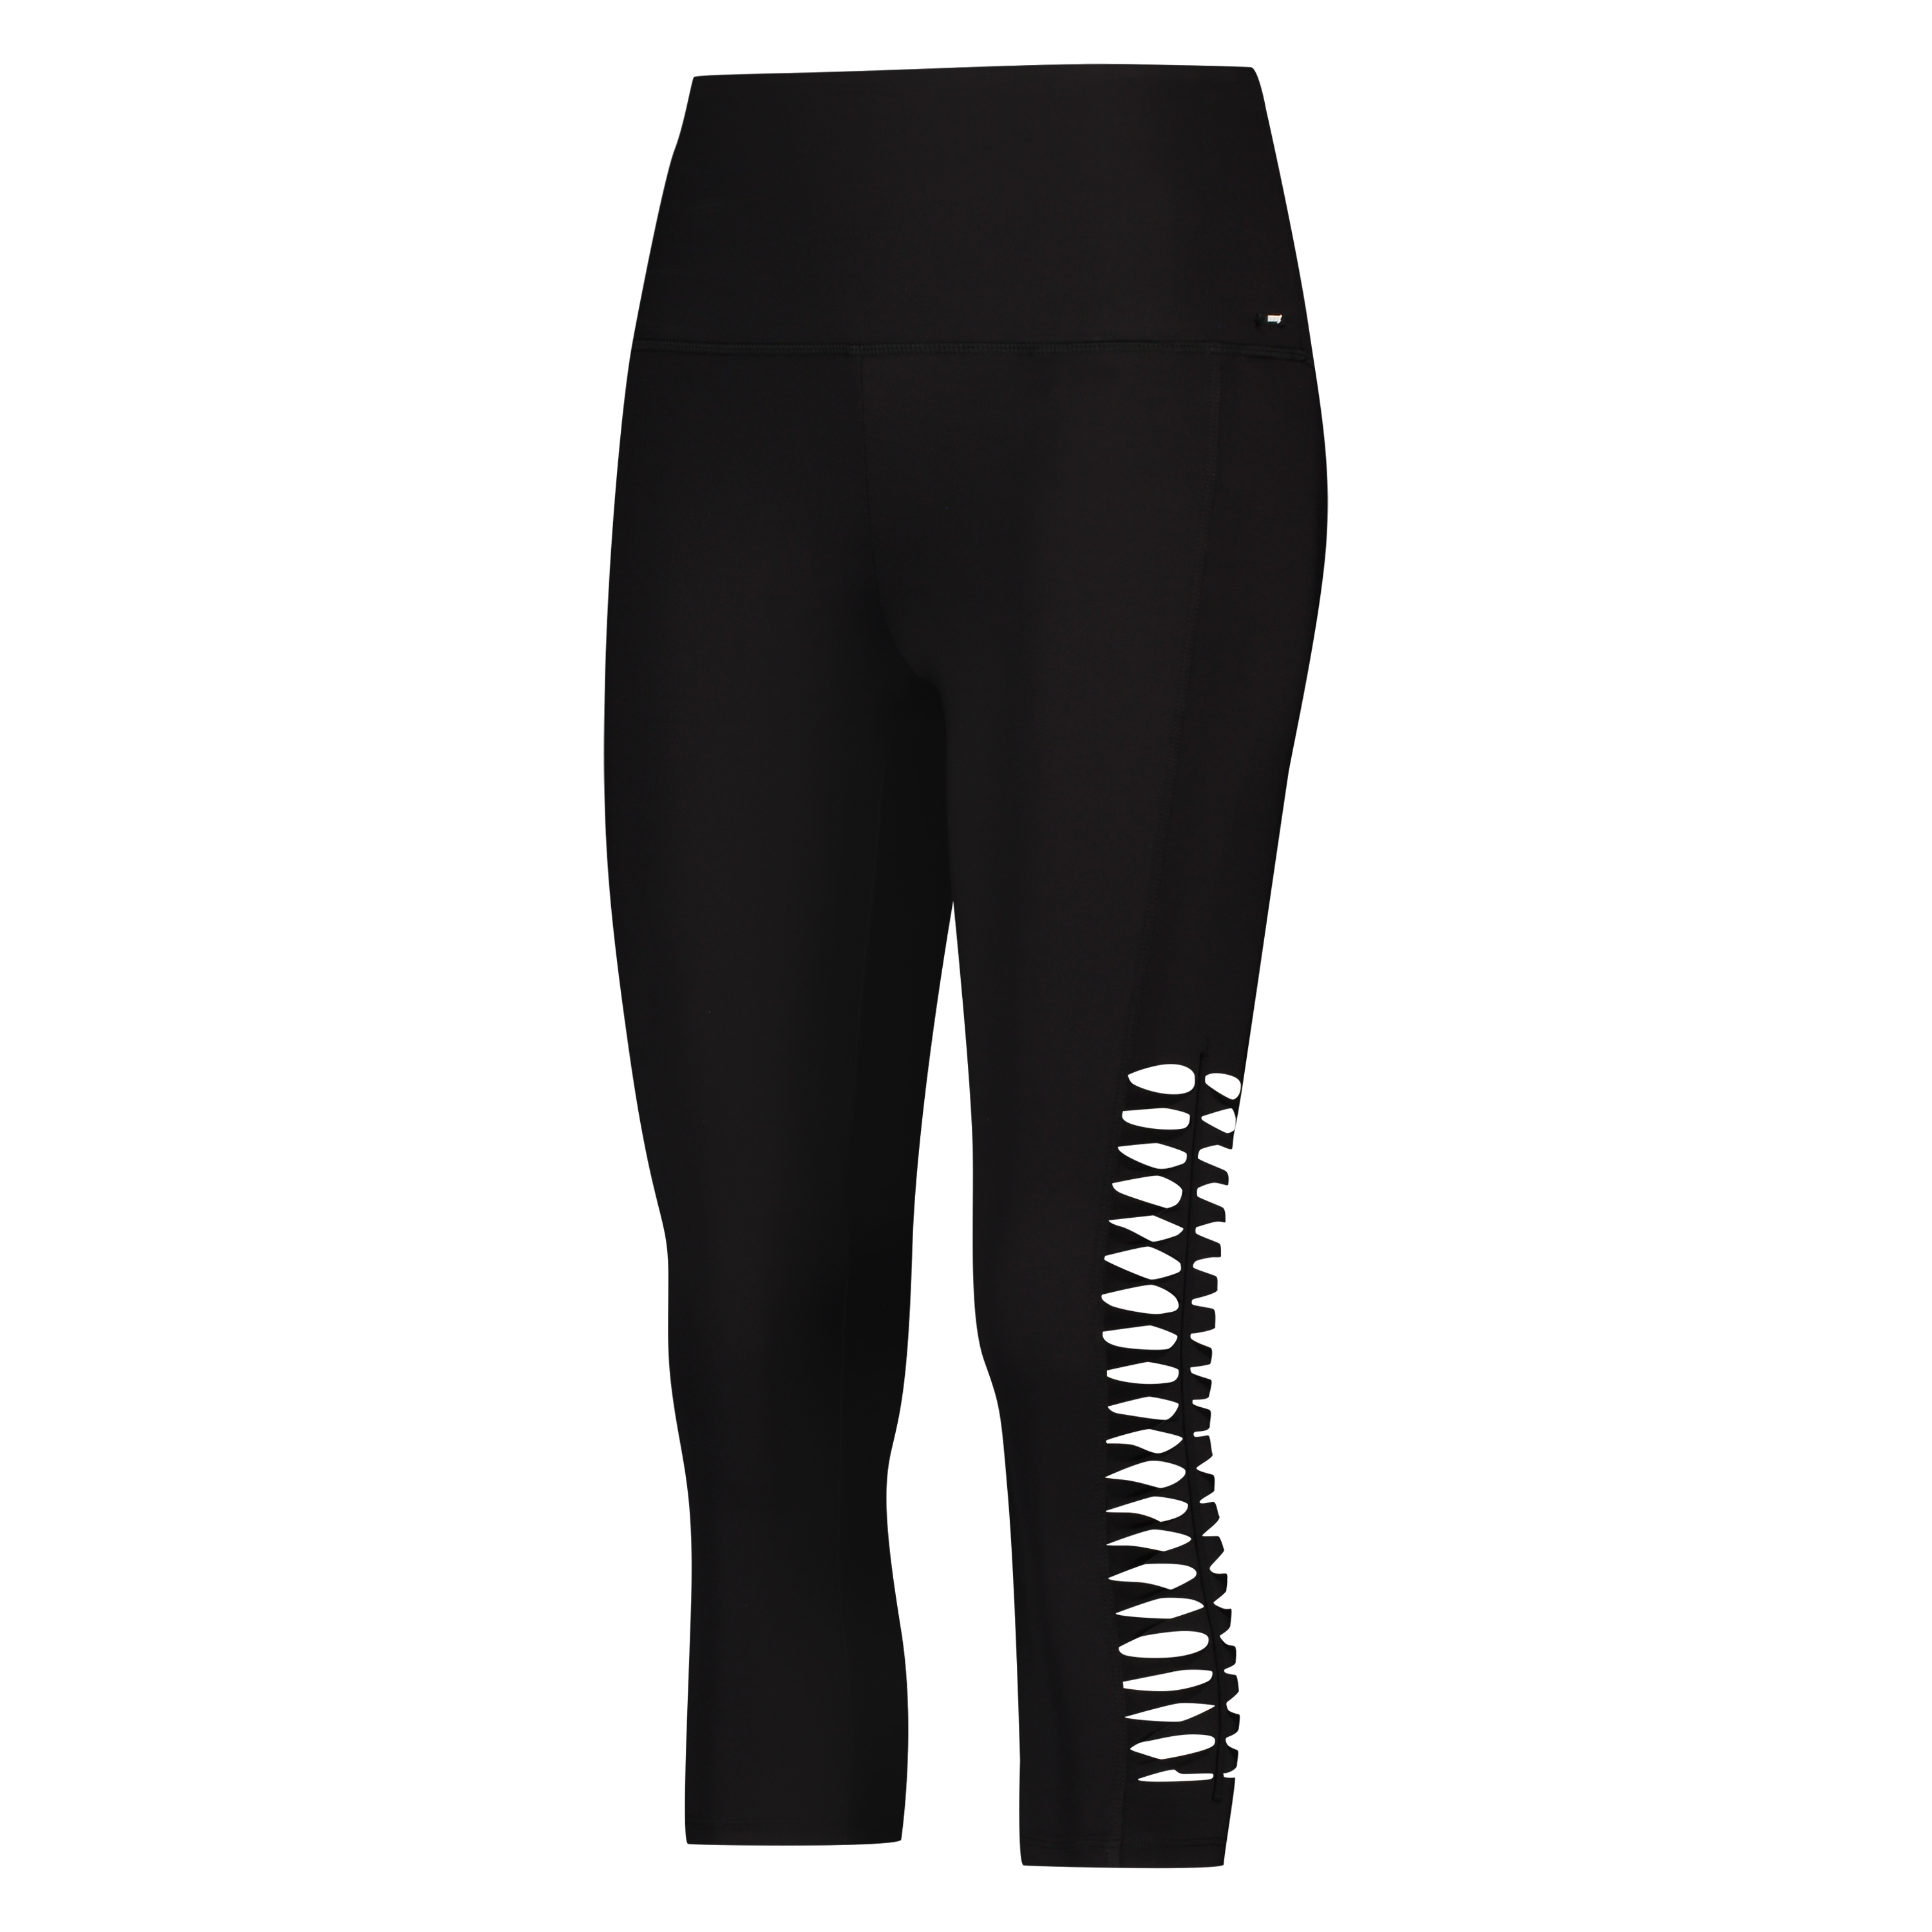 HKMX Regular waist capri Level 2, Zwart, main